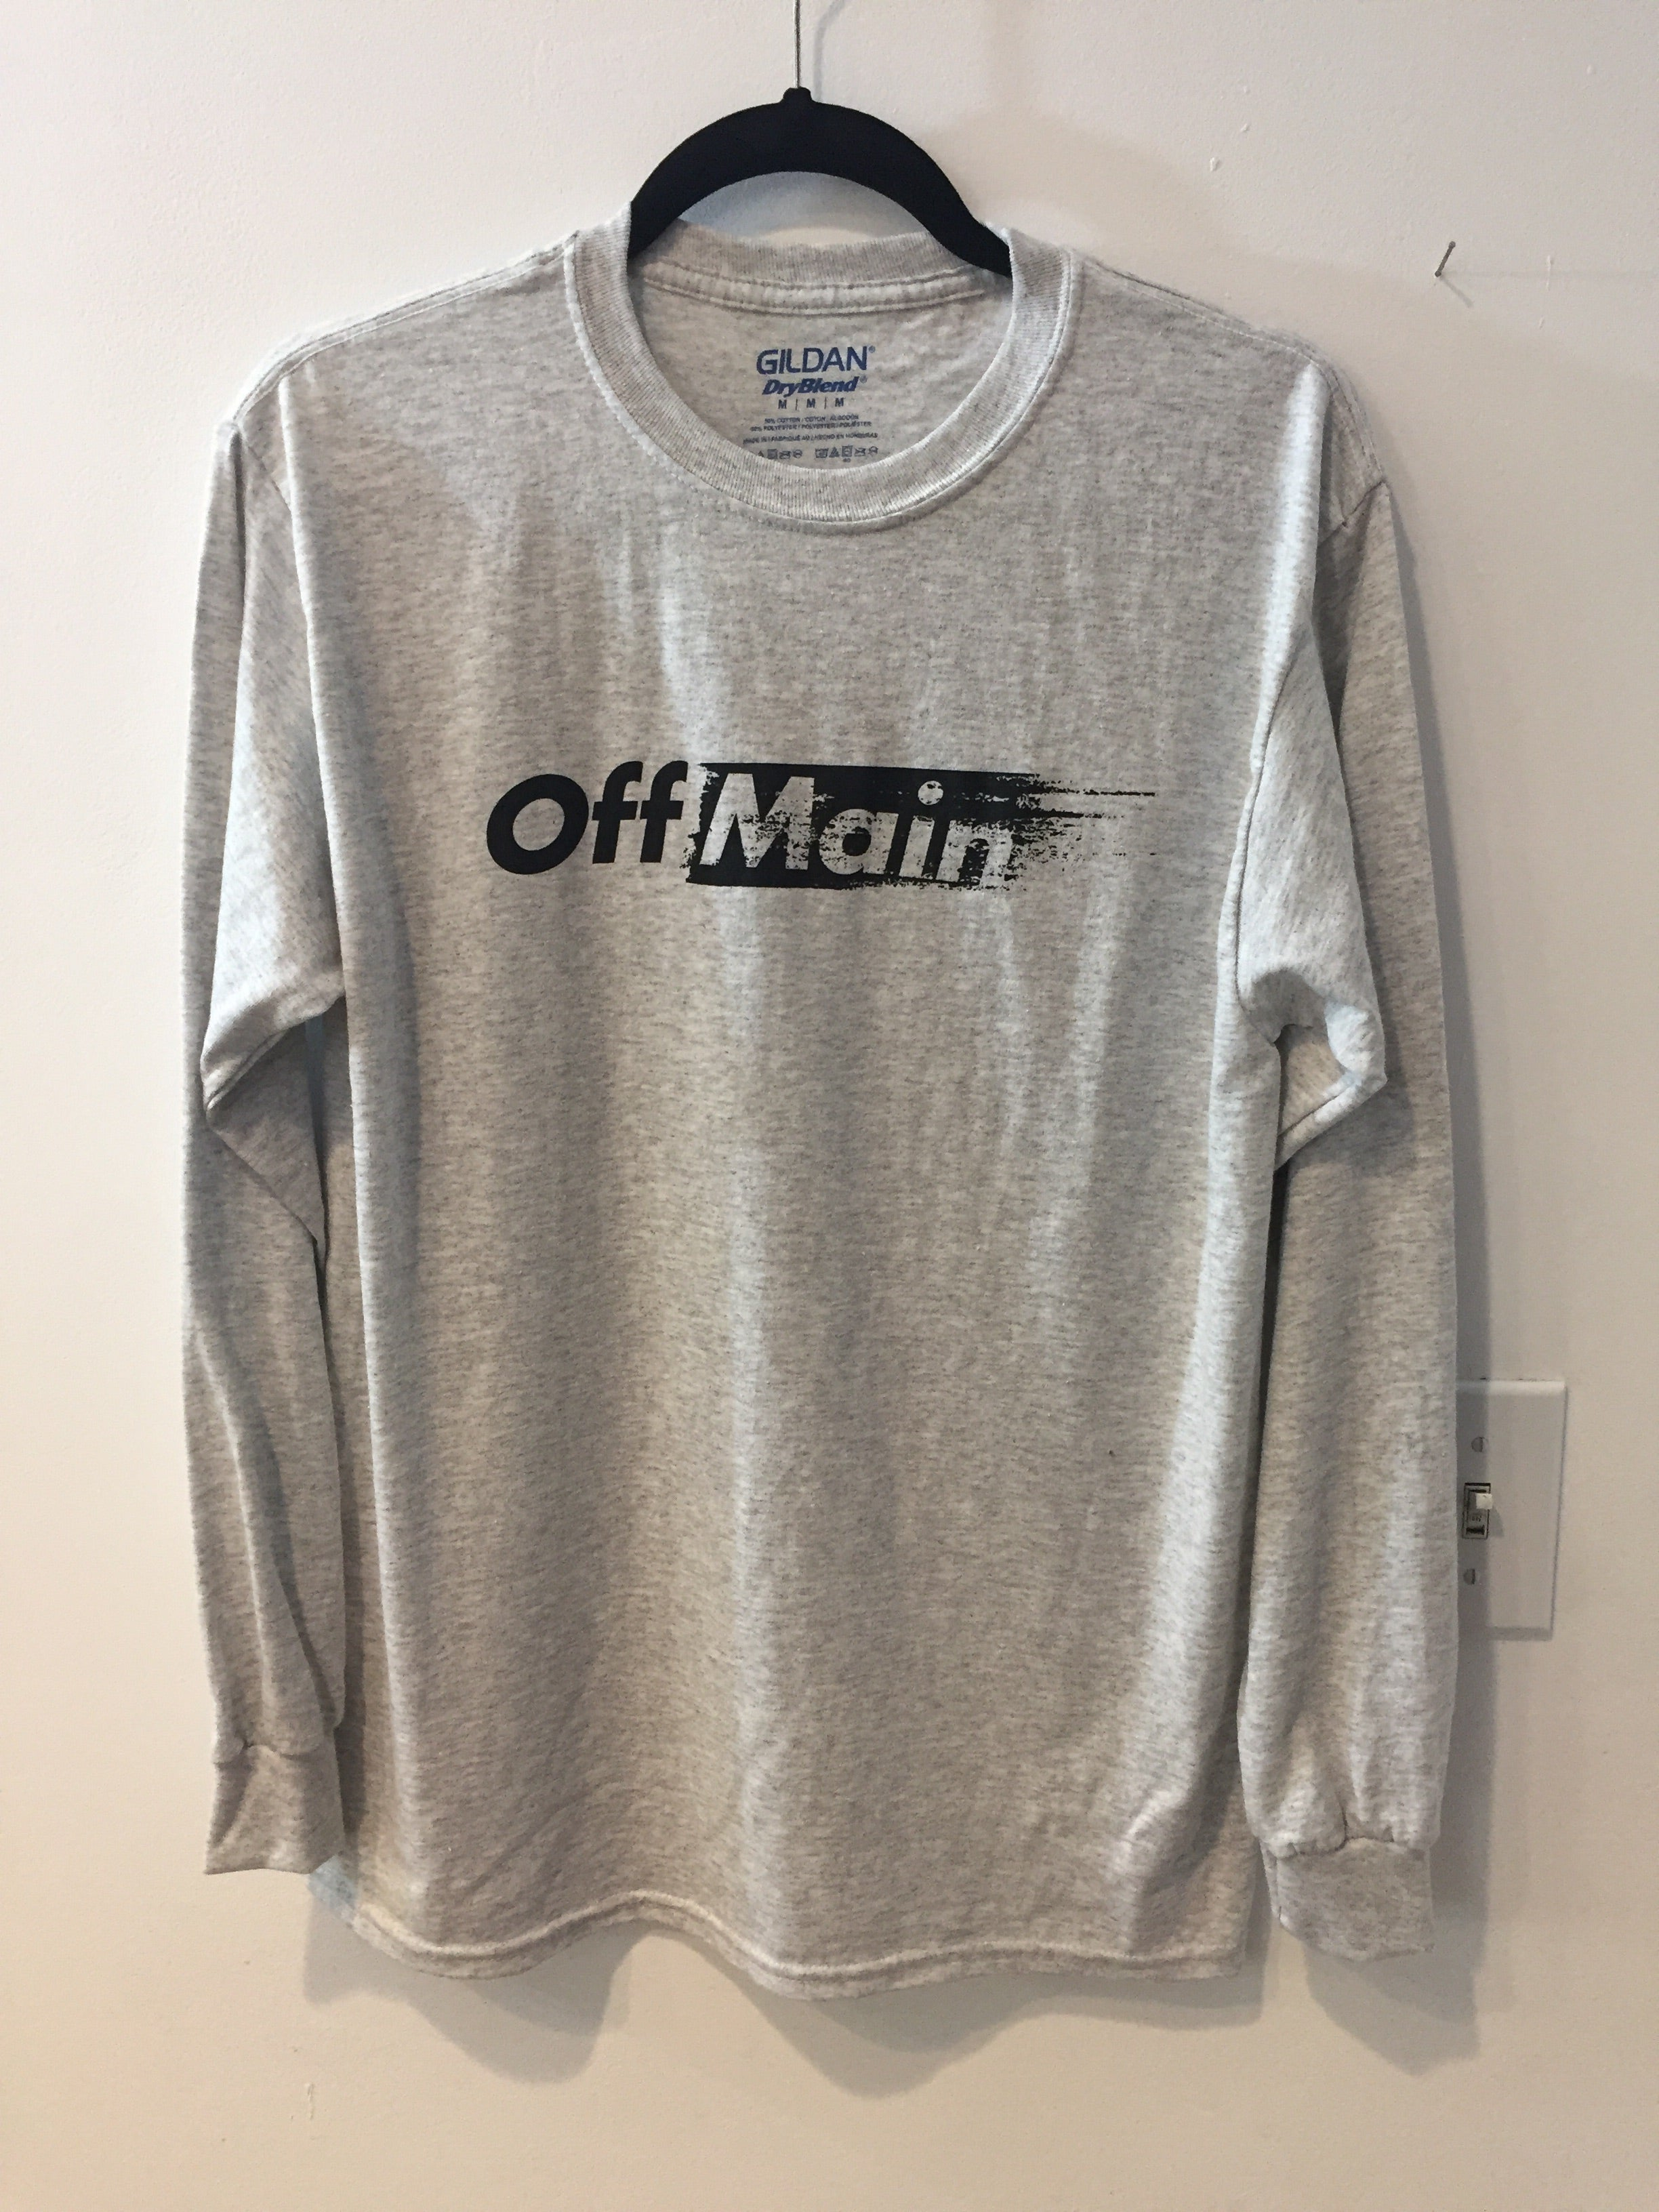 OffMain - Long Sleeve Tee - Gray